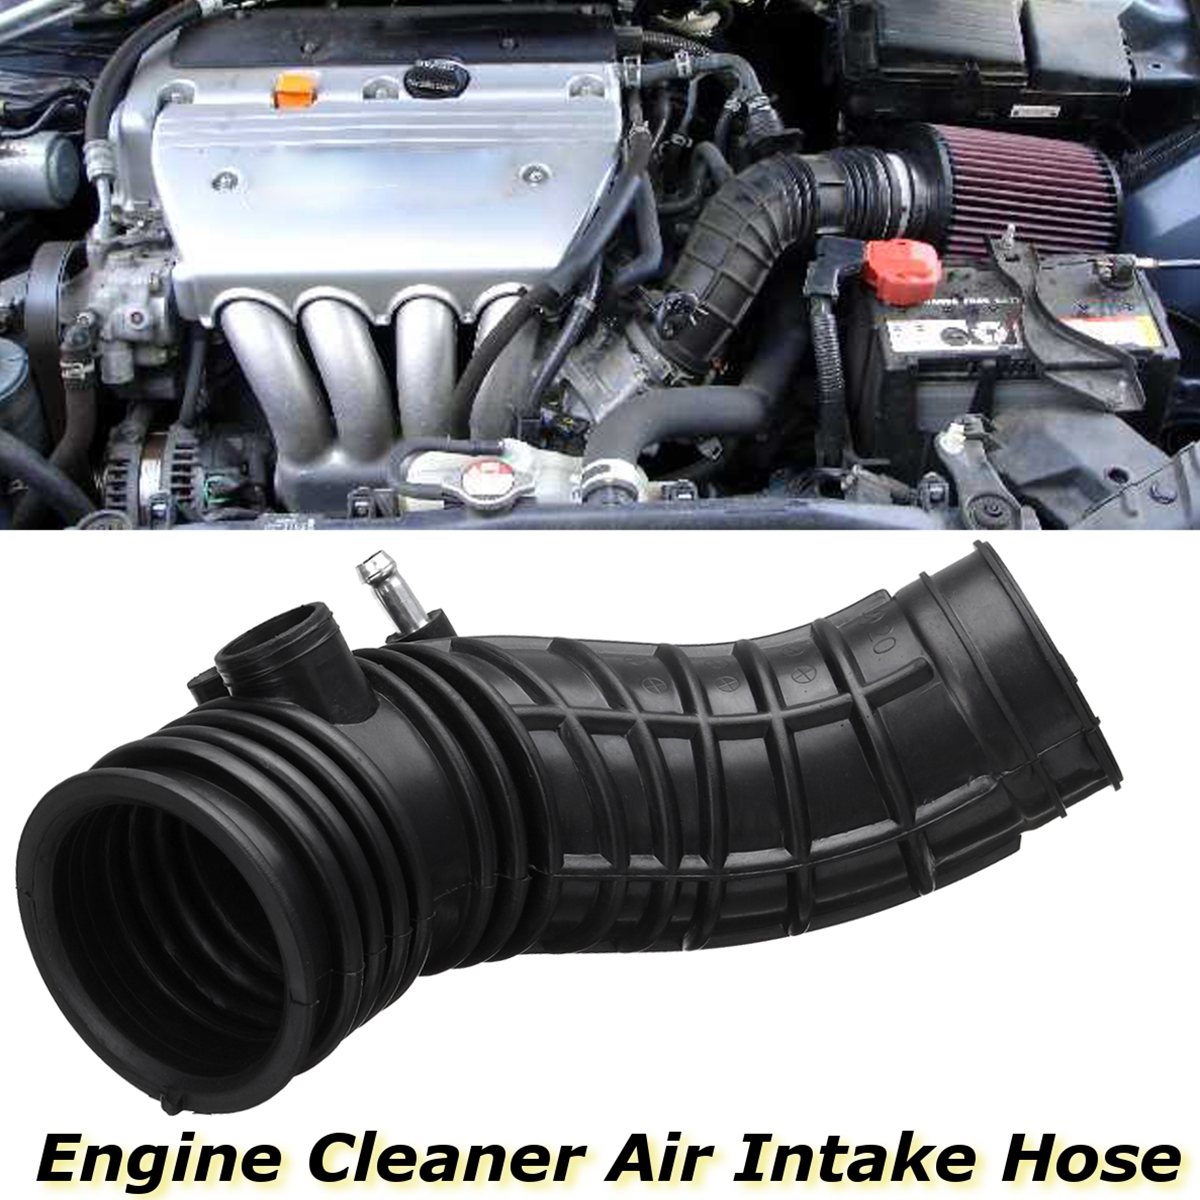 small resolution of for acura tsx 2004 2005 2006 2007 2008 aih551078h car auto engine rubber cleaner air intake hose